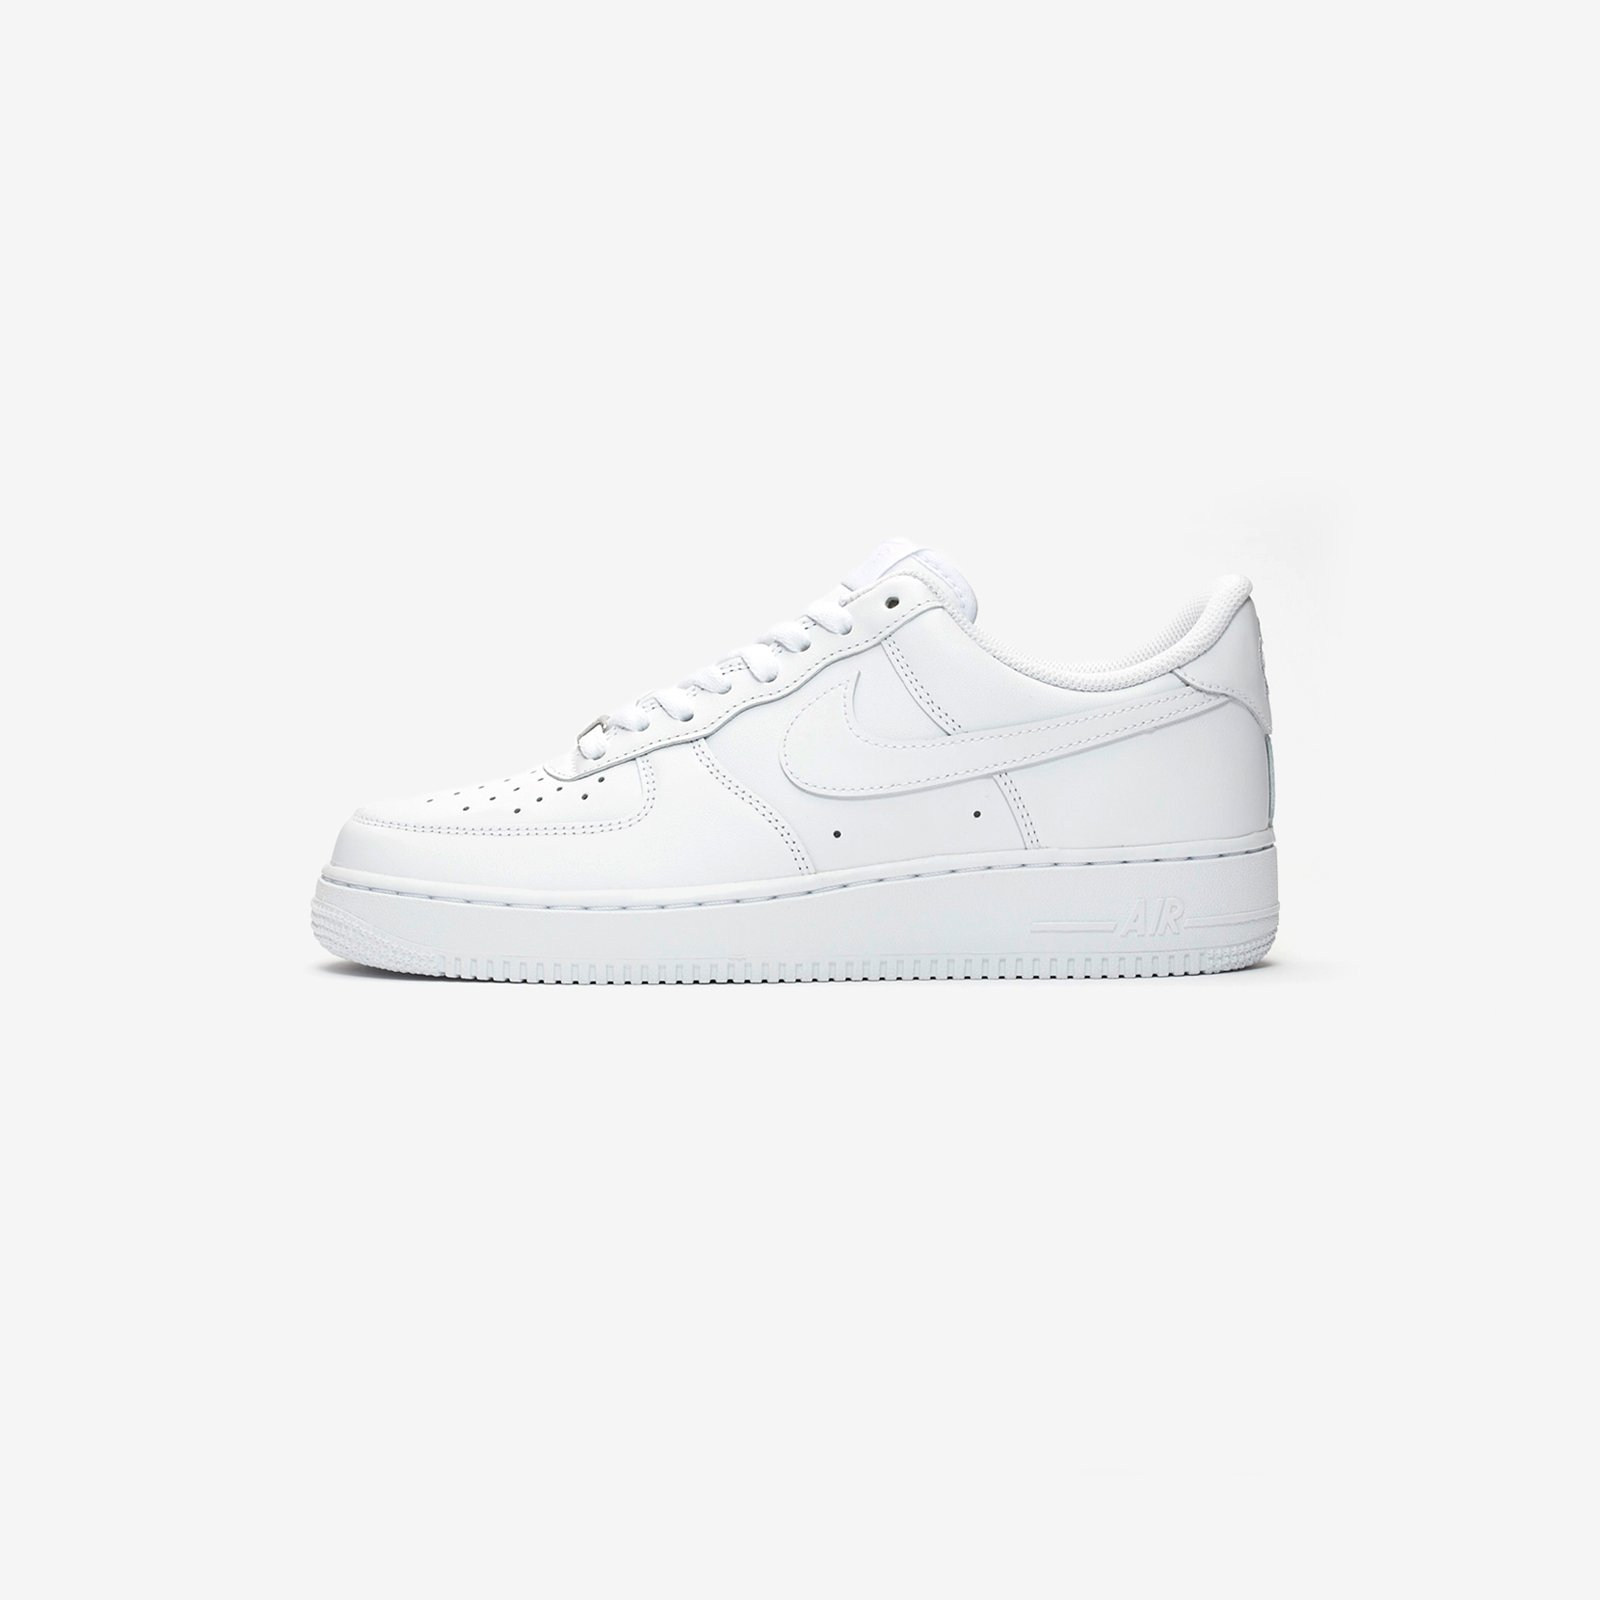 Nike Air Force 1 Nike AF1 Air Force One All Black White Low Top Sneakers 315115 112